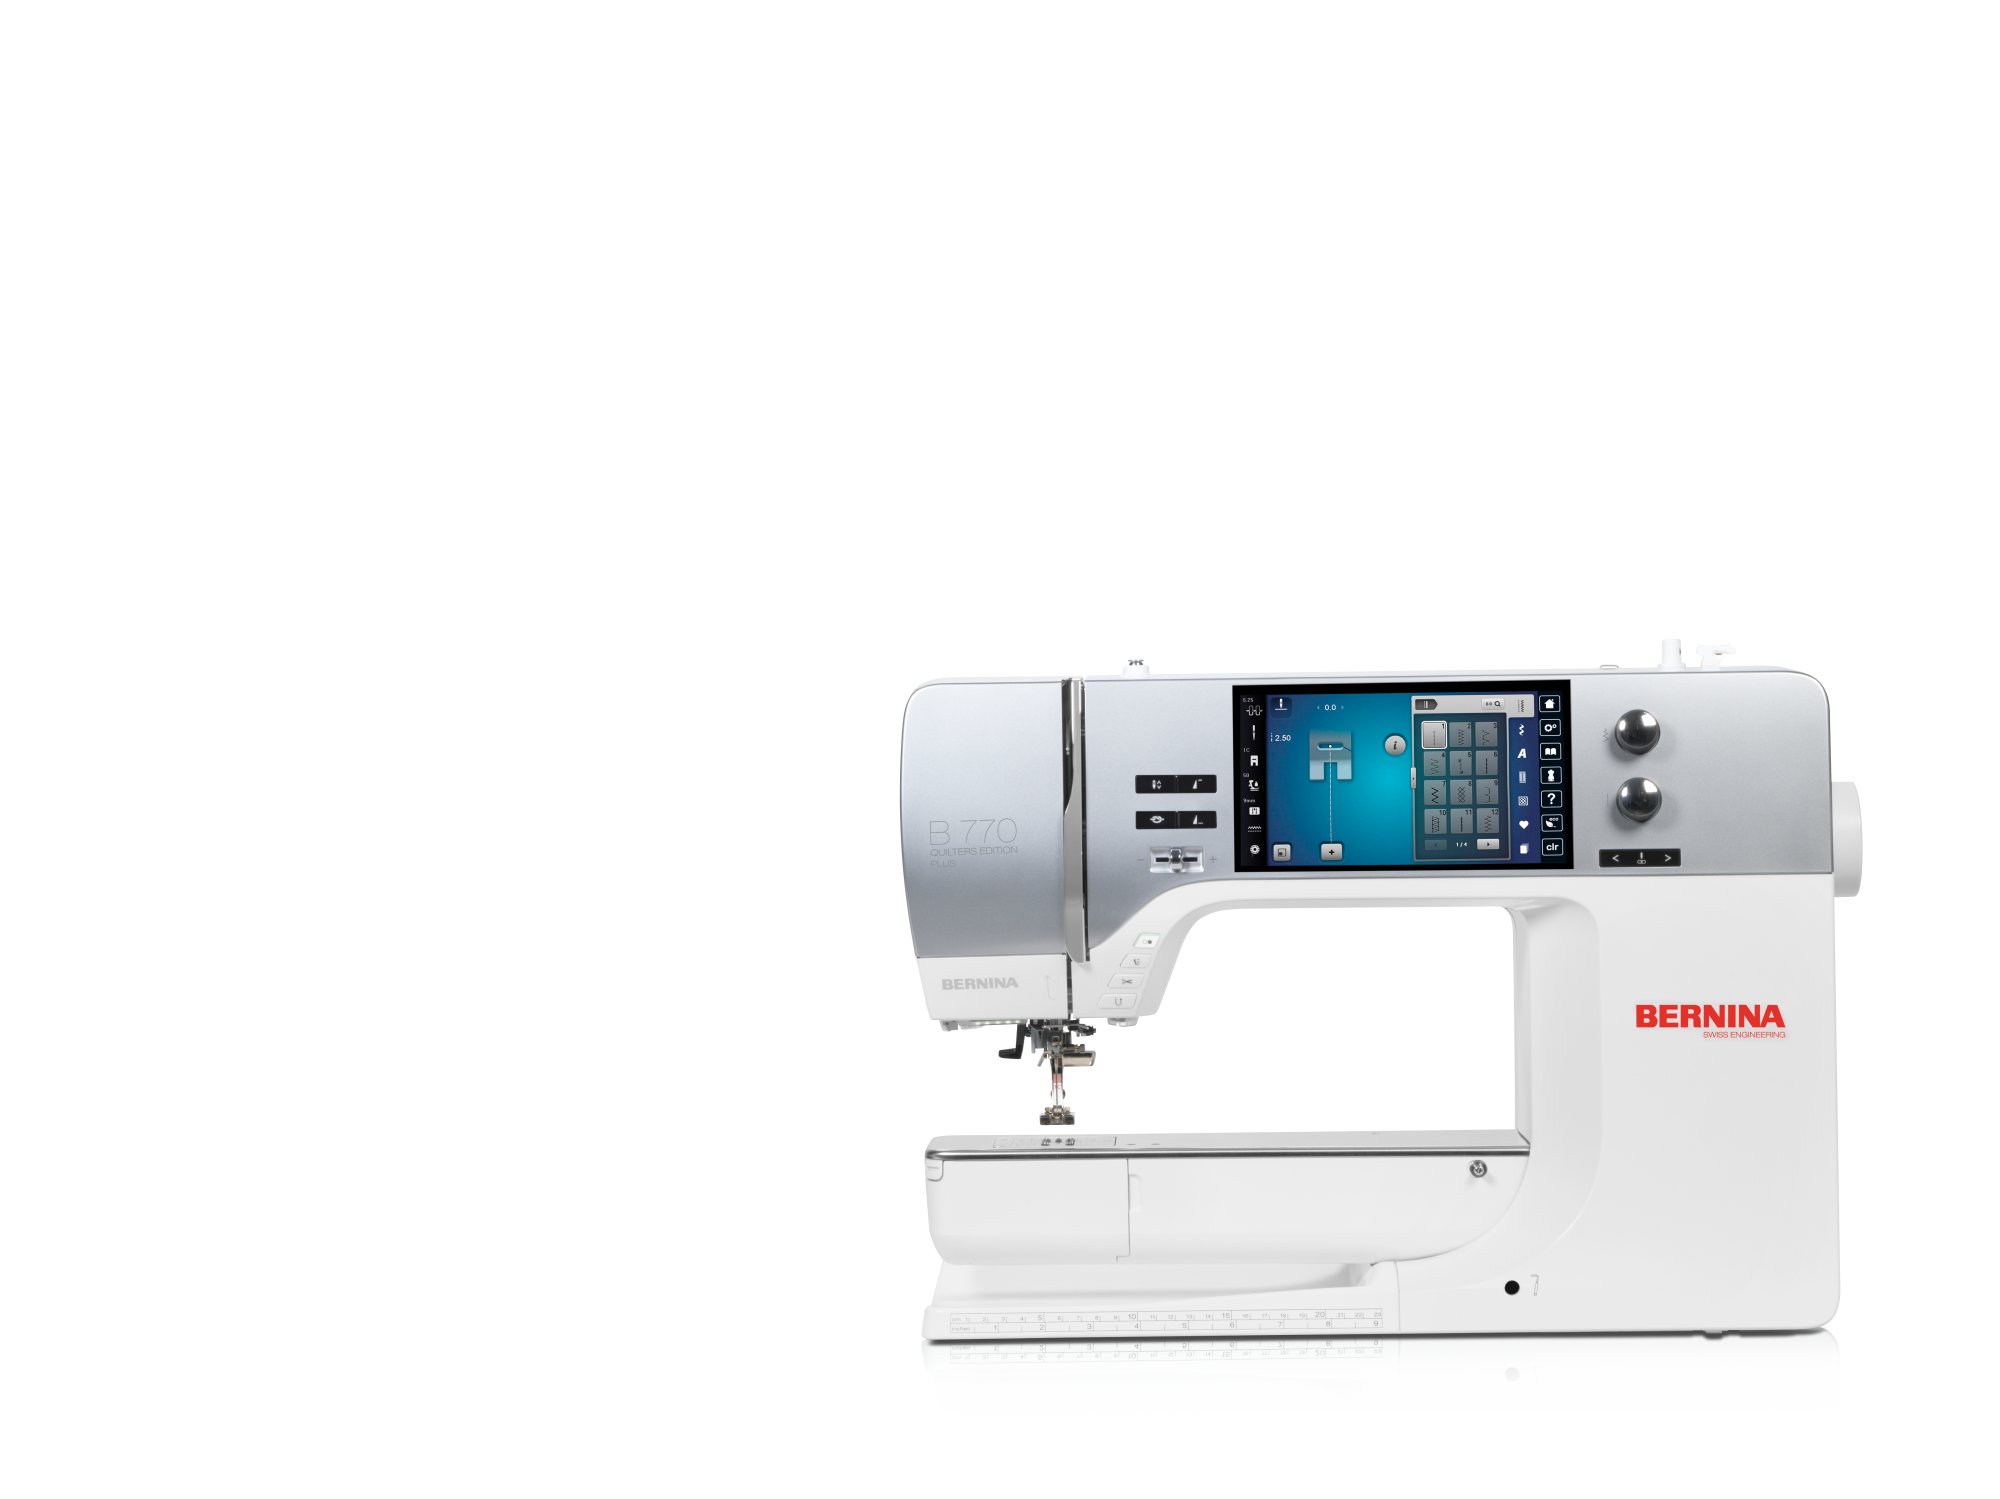 Bernina B880 Crystal Edition with Embroidery